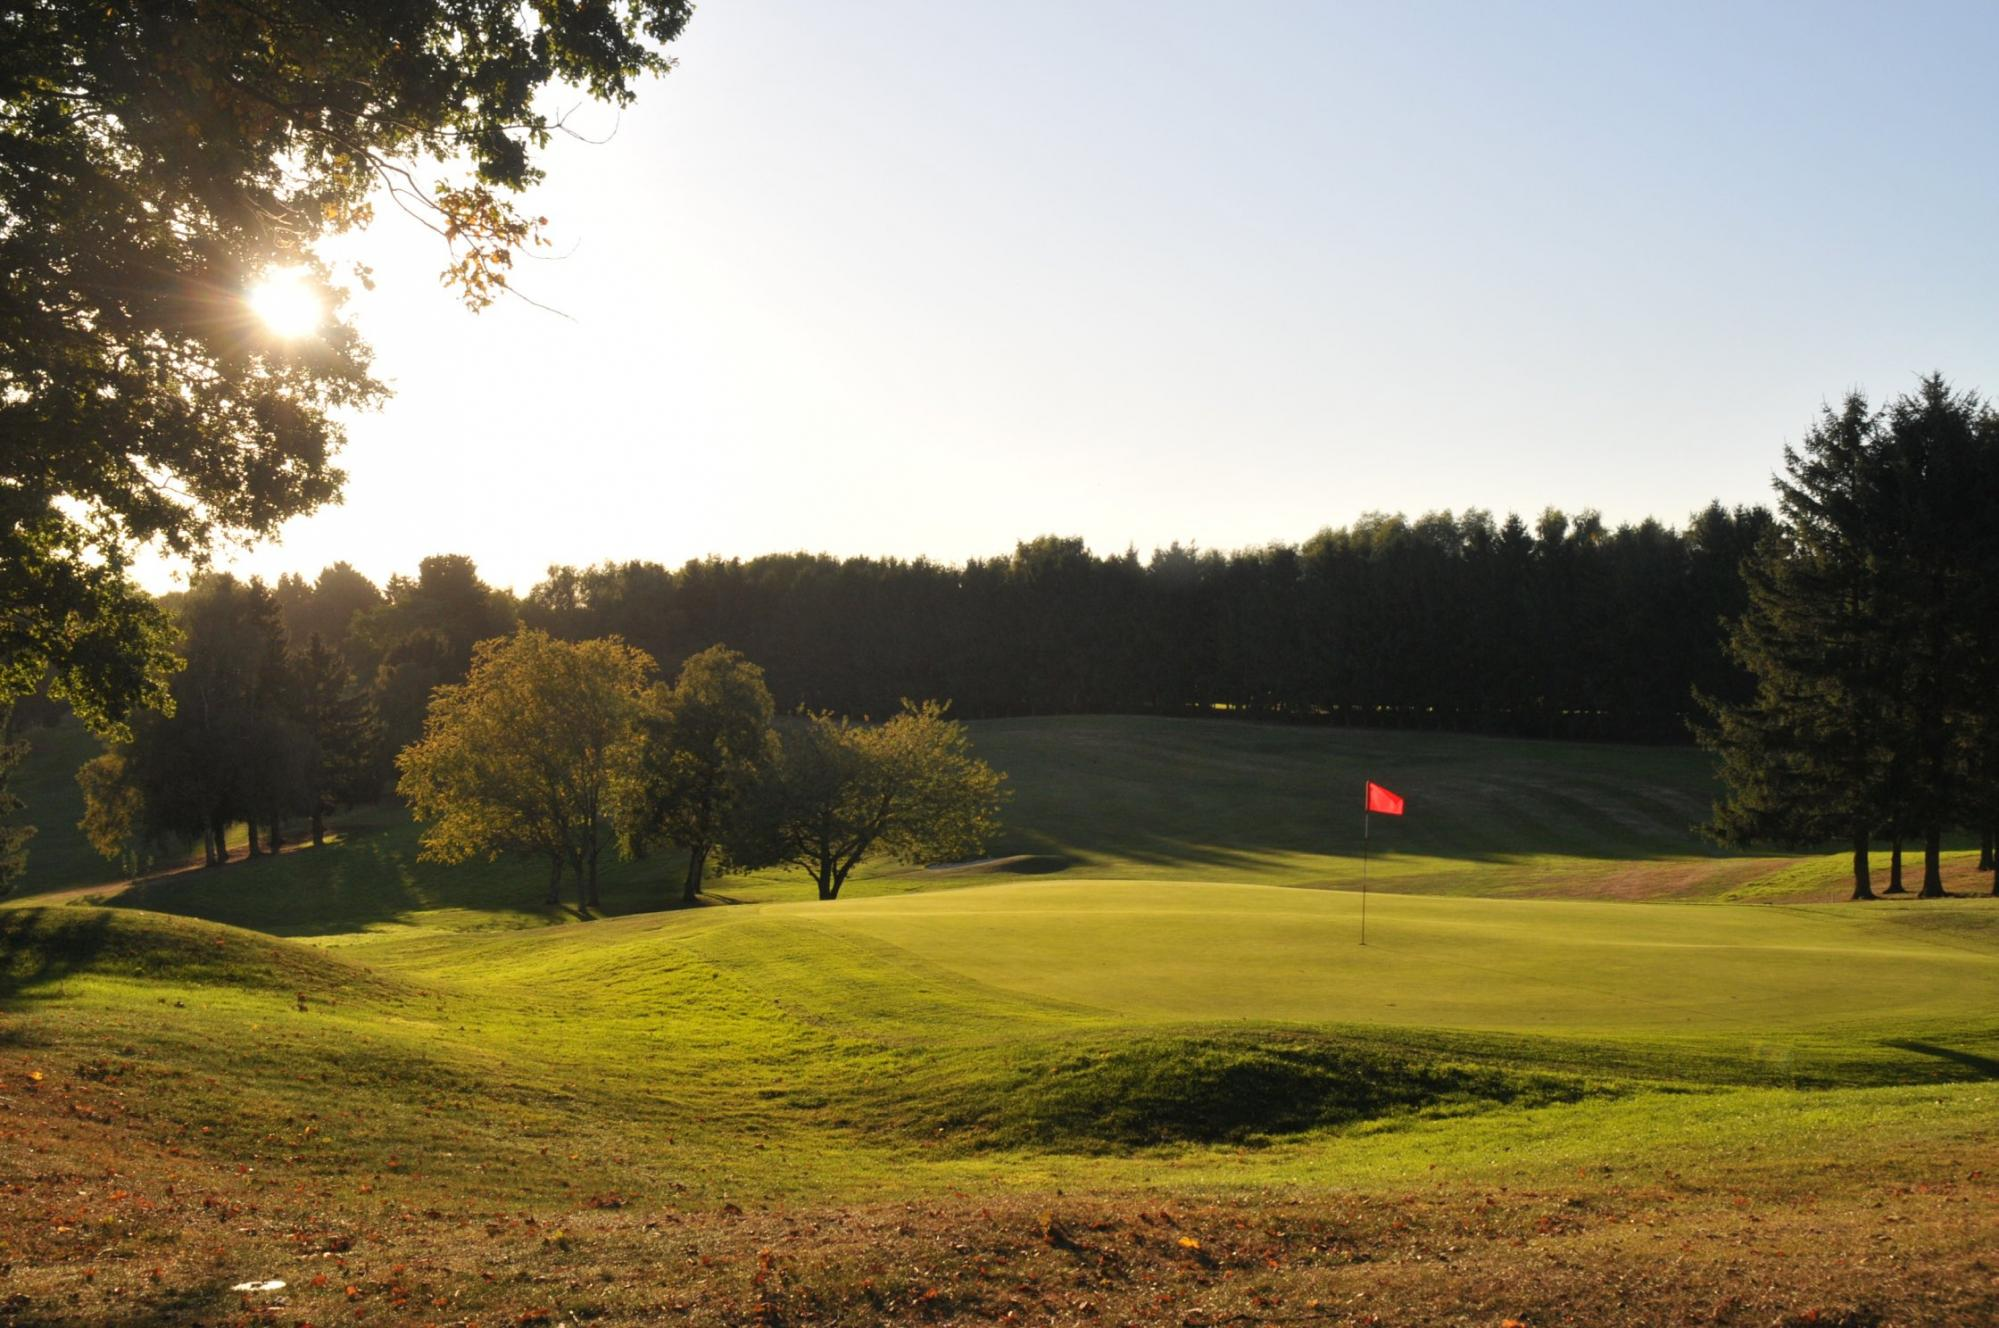 View Golf Club de Louvain-la-Neuve's beautiful golf course within dramatic Brussels Waterloo & Mons.